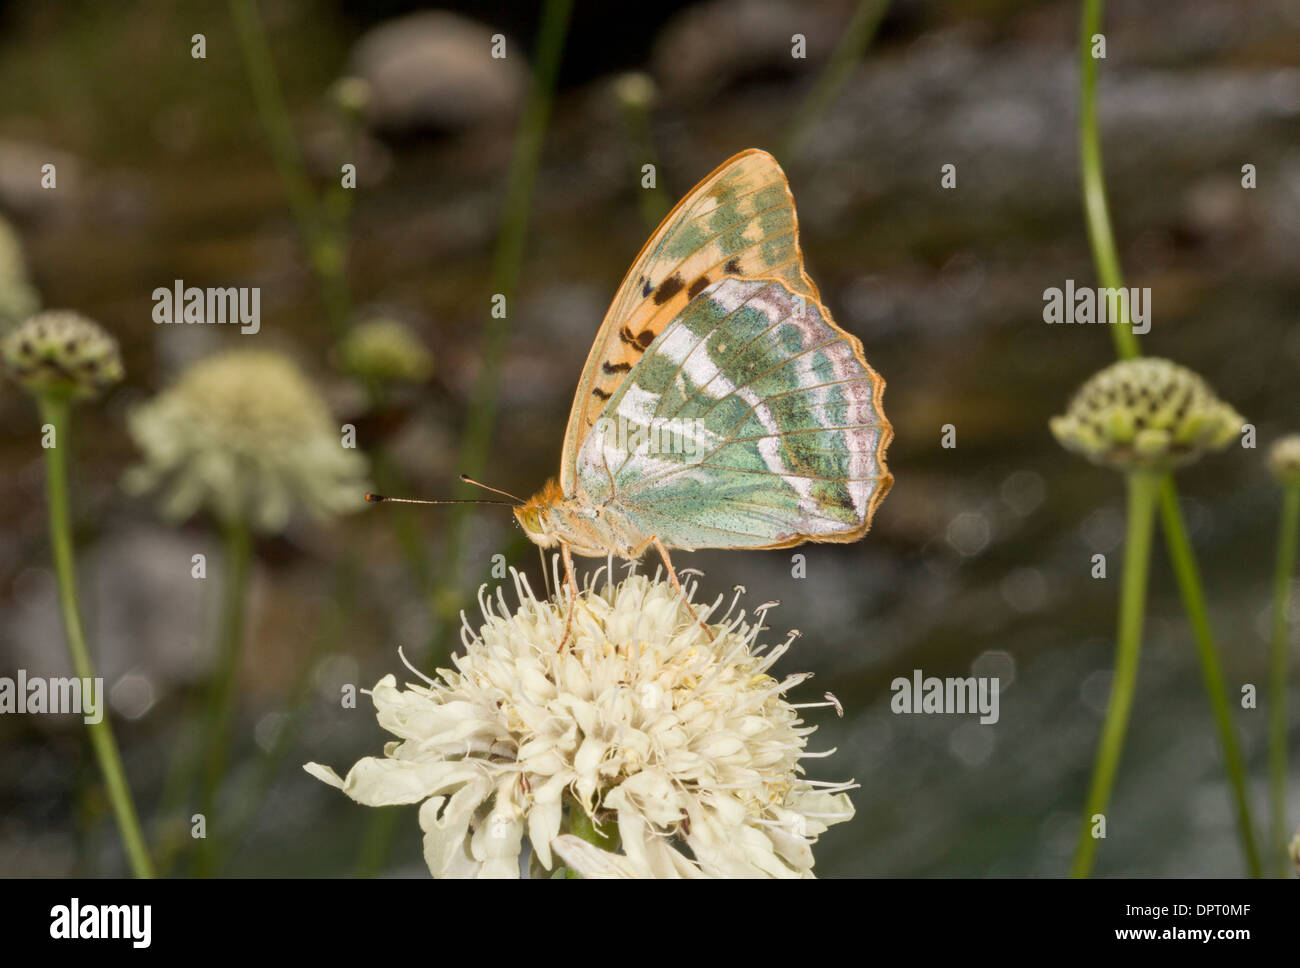 Silver-washed fritillary, Argynnis paphia on yellow scabious, East Turkey. - Stock Image